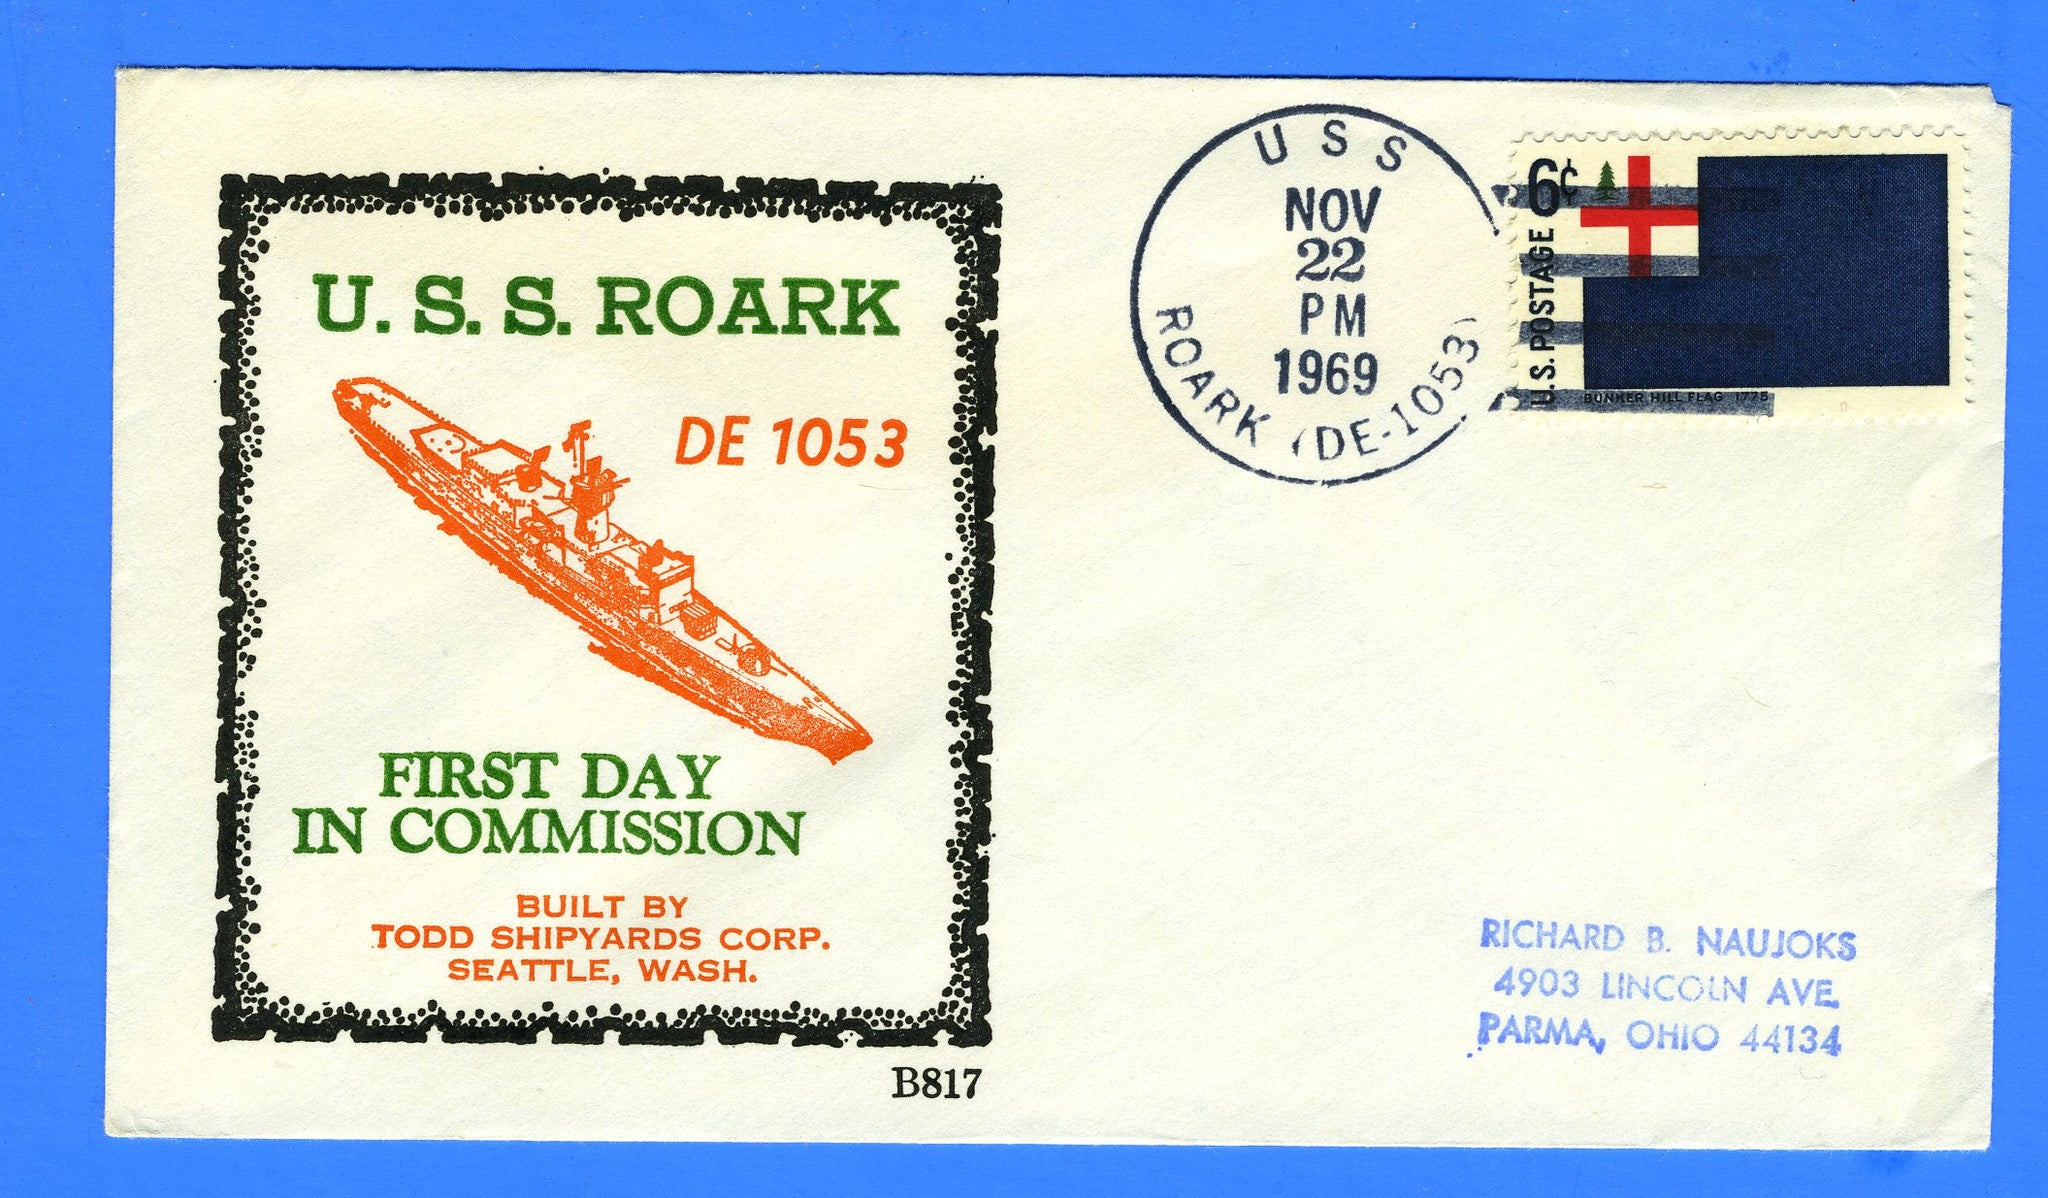 USS Roark DE-1053 Commissioned November 22, 1969 - Beck B817